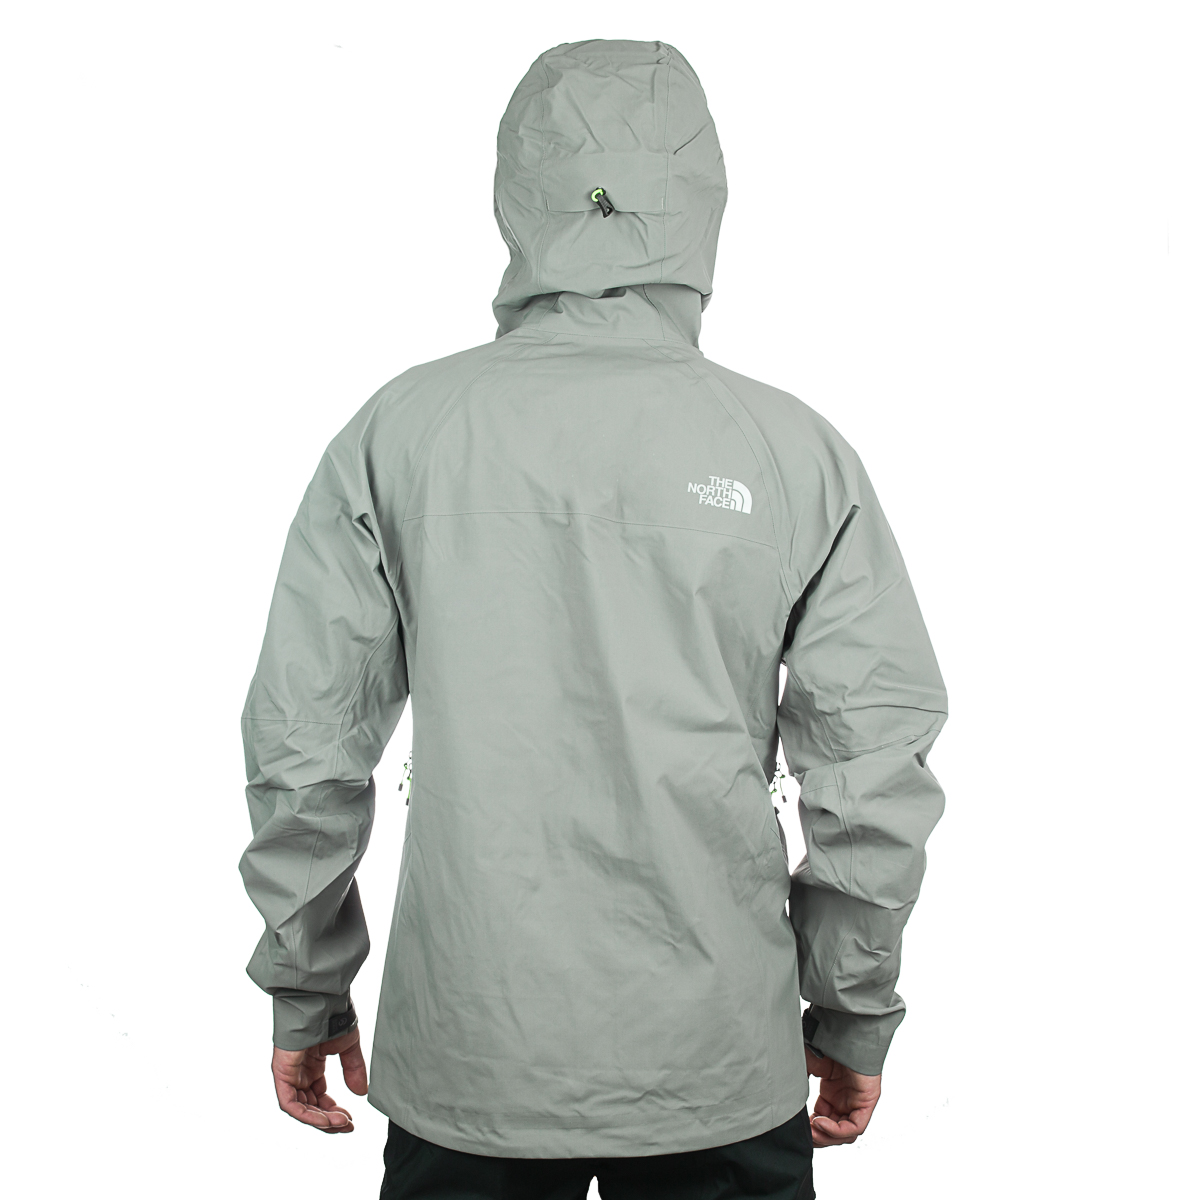 ace0b8e6a The North Face Point Five NG Jacket   Technical Jackets   EpicTV Shop